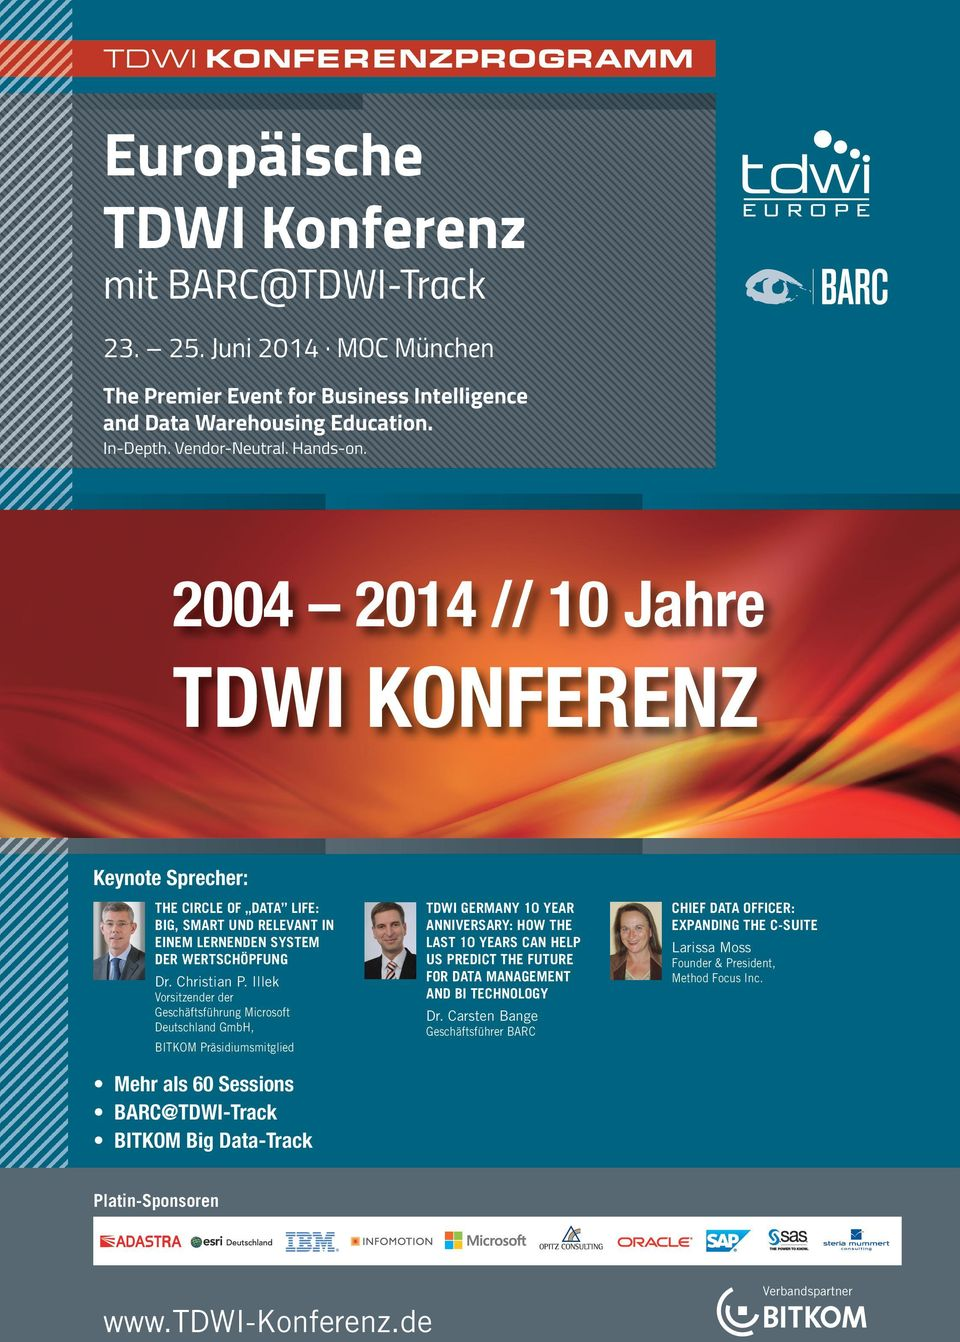 Illek Vorsitzender der Geschäftsführung Microsoft Deutschland GmbH, BITKOM Präsidiumsmitglied Mehr als 60 Sessions @TDWI-Track BITKOM Big Data-Track TDWI Germany 10 year anniversary: How the last